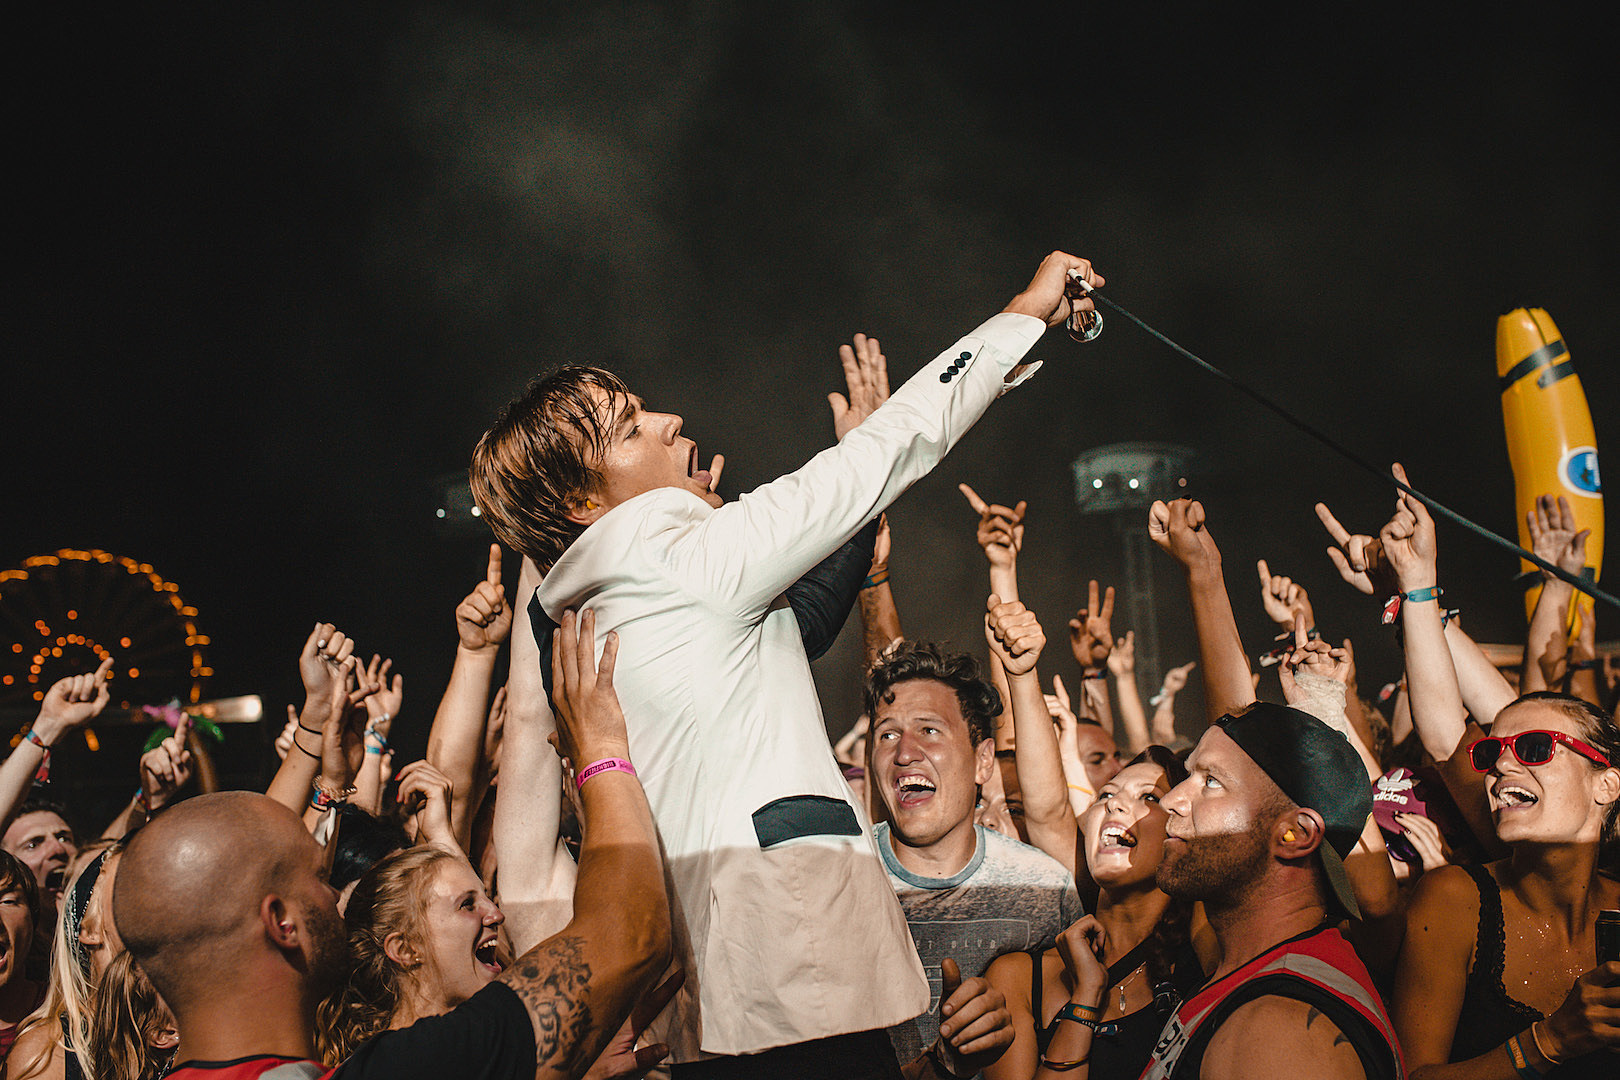 The Hives Return With First New Song in Four Years, 'I'm Alive'